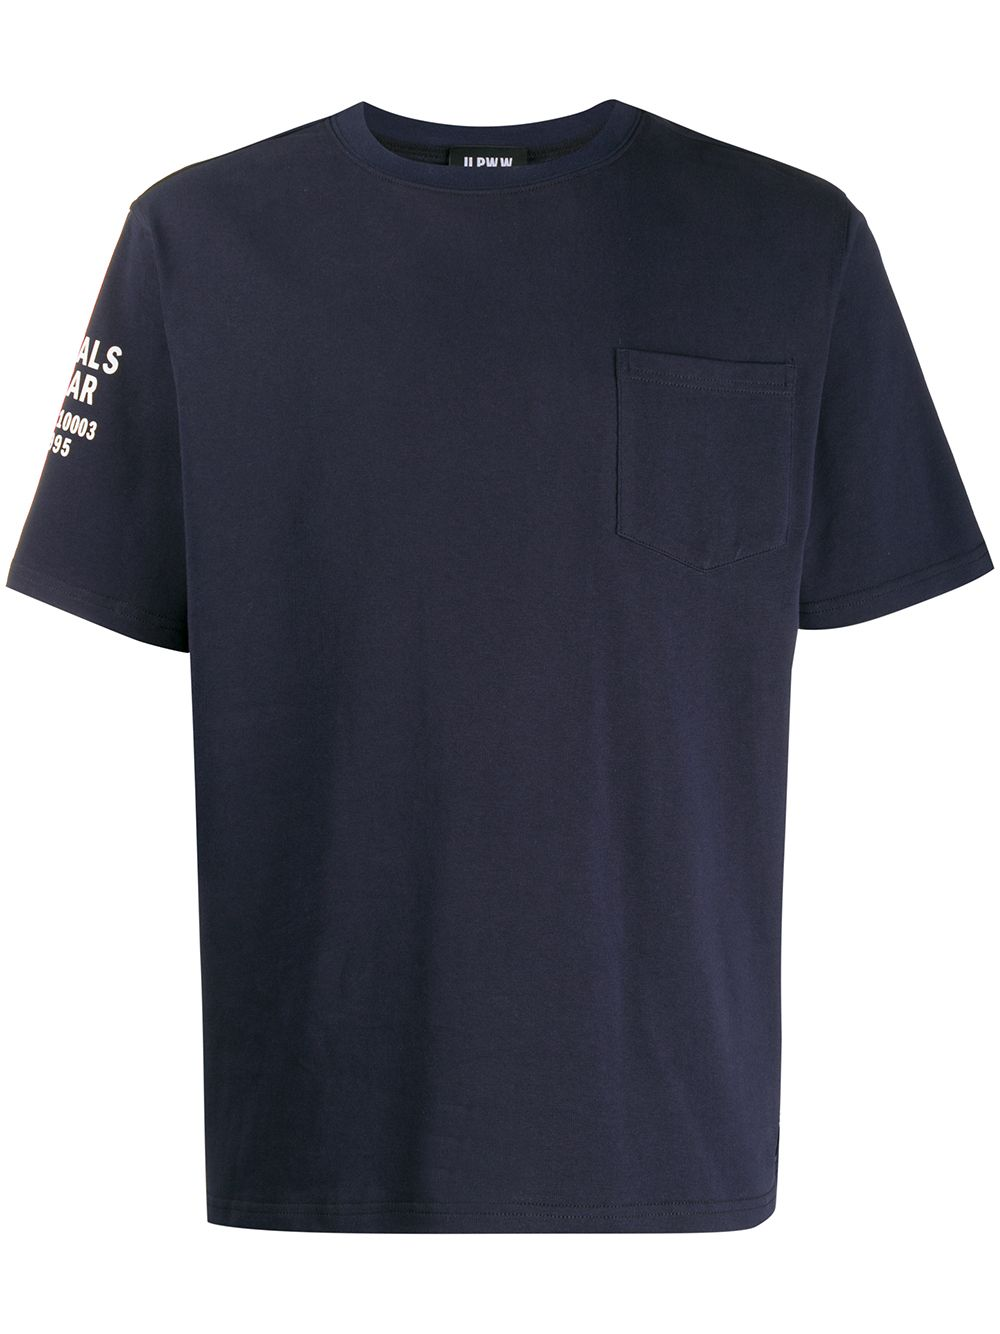 Picture of U.P.W.W. | Pocket Tee